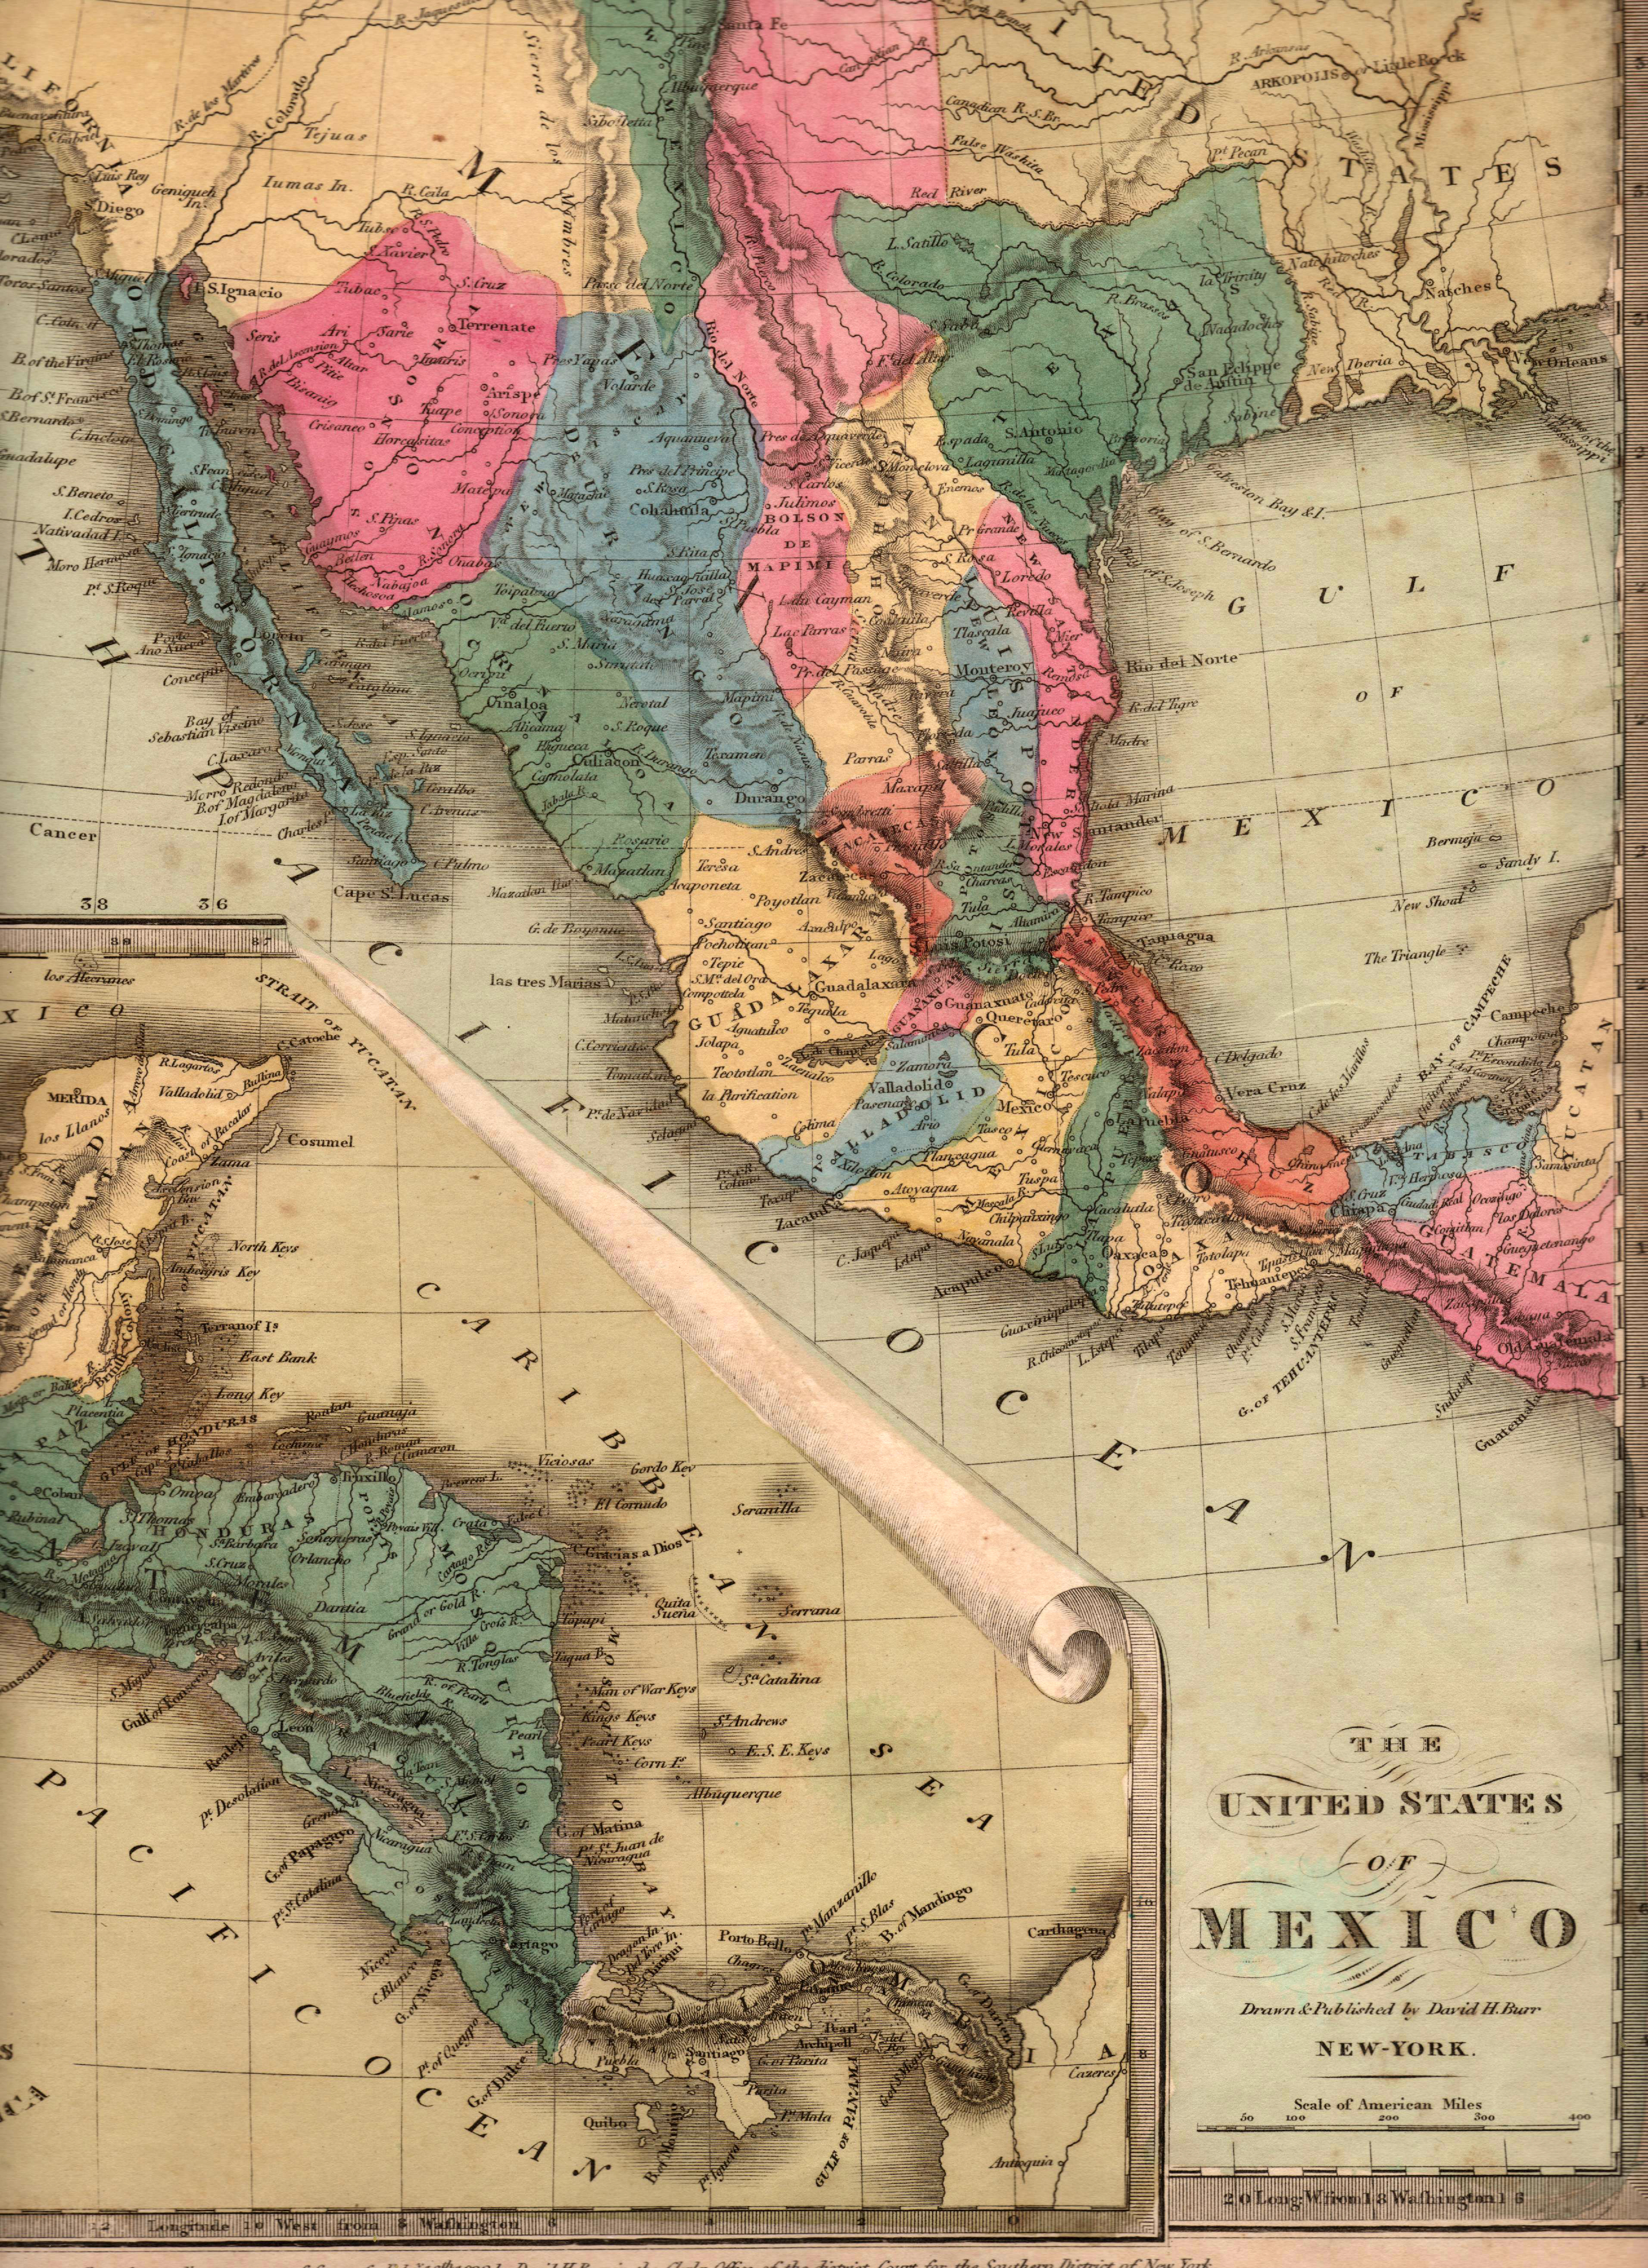 Map Of Texas 1835.The United States Of Mexico Yana Marty Davis Map Collection